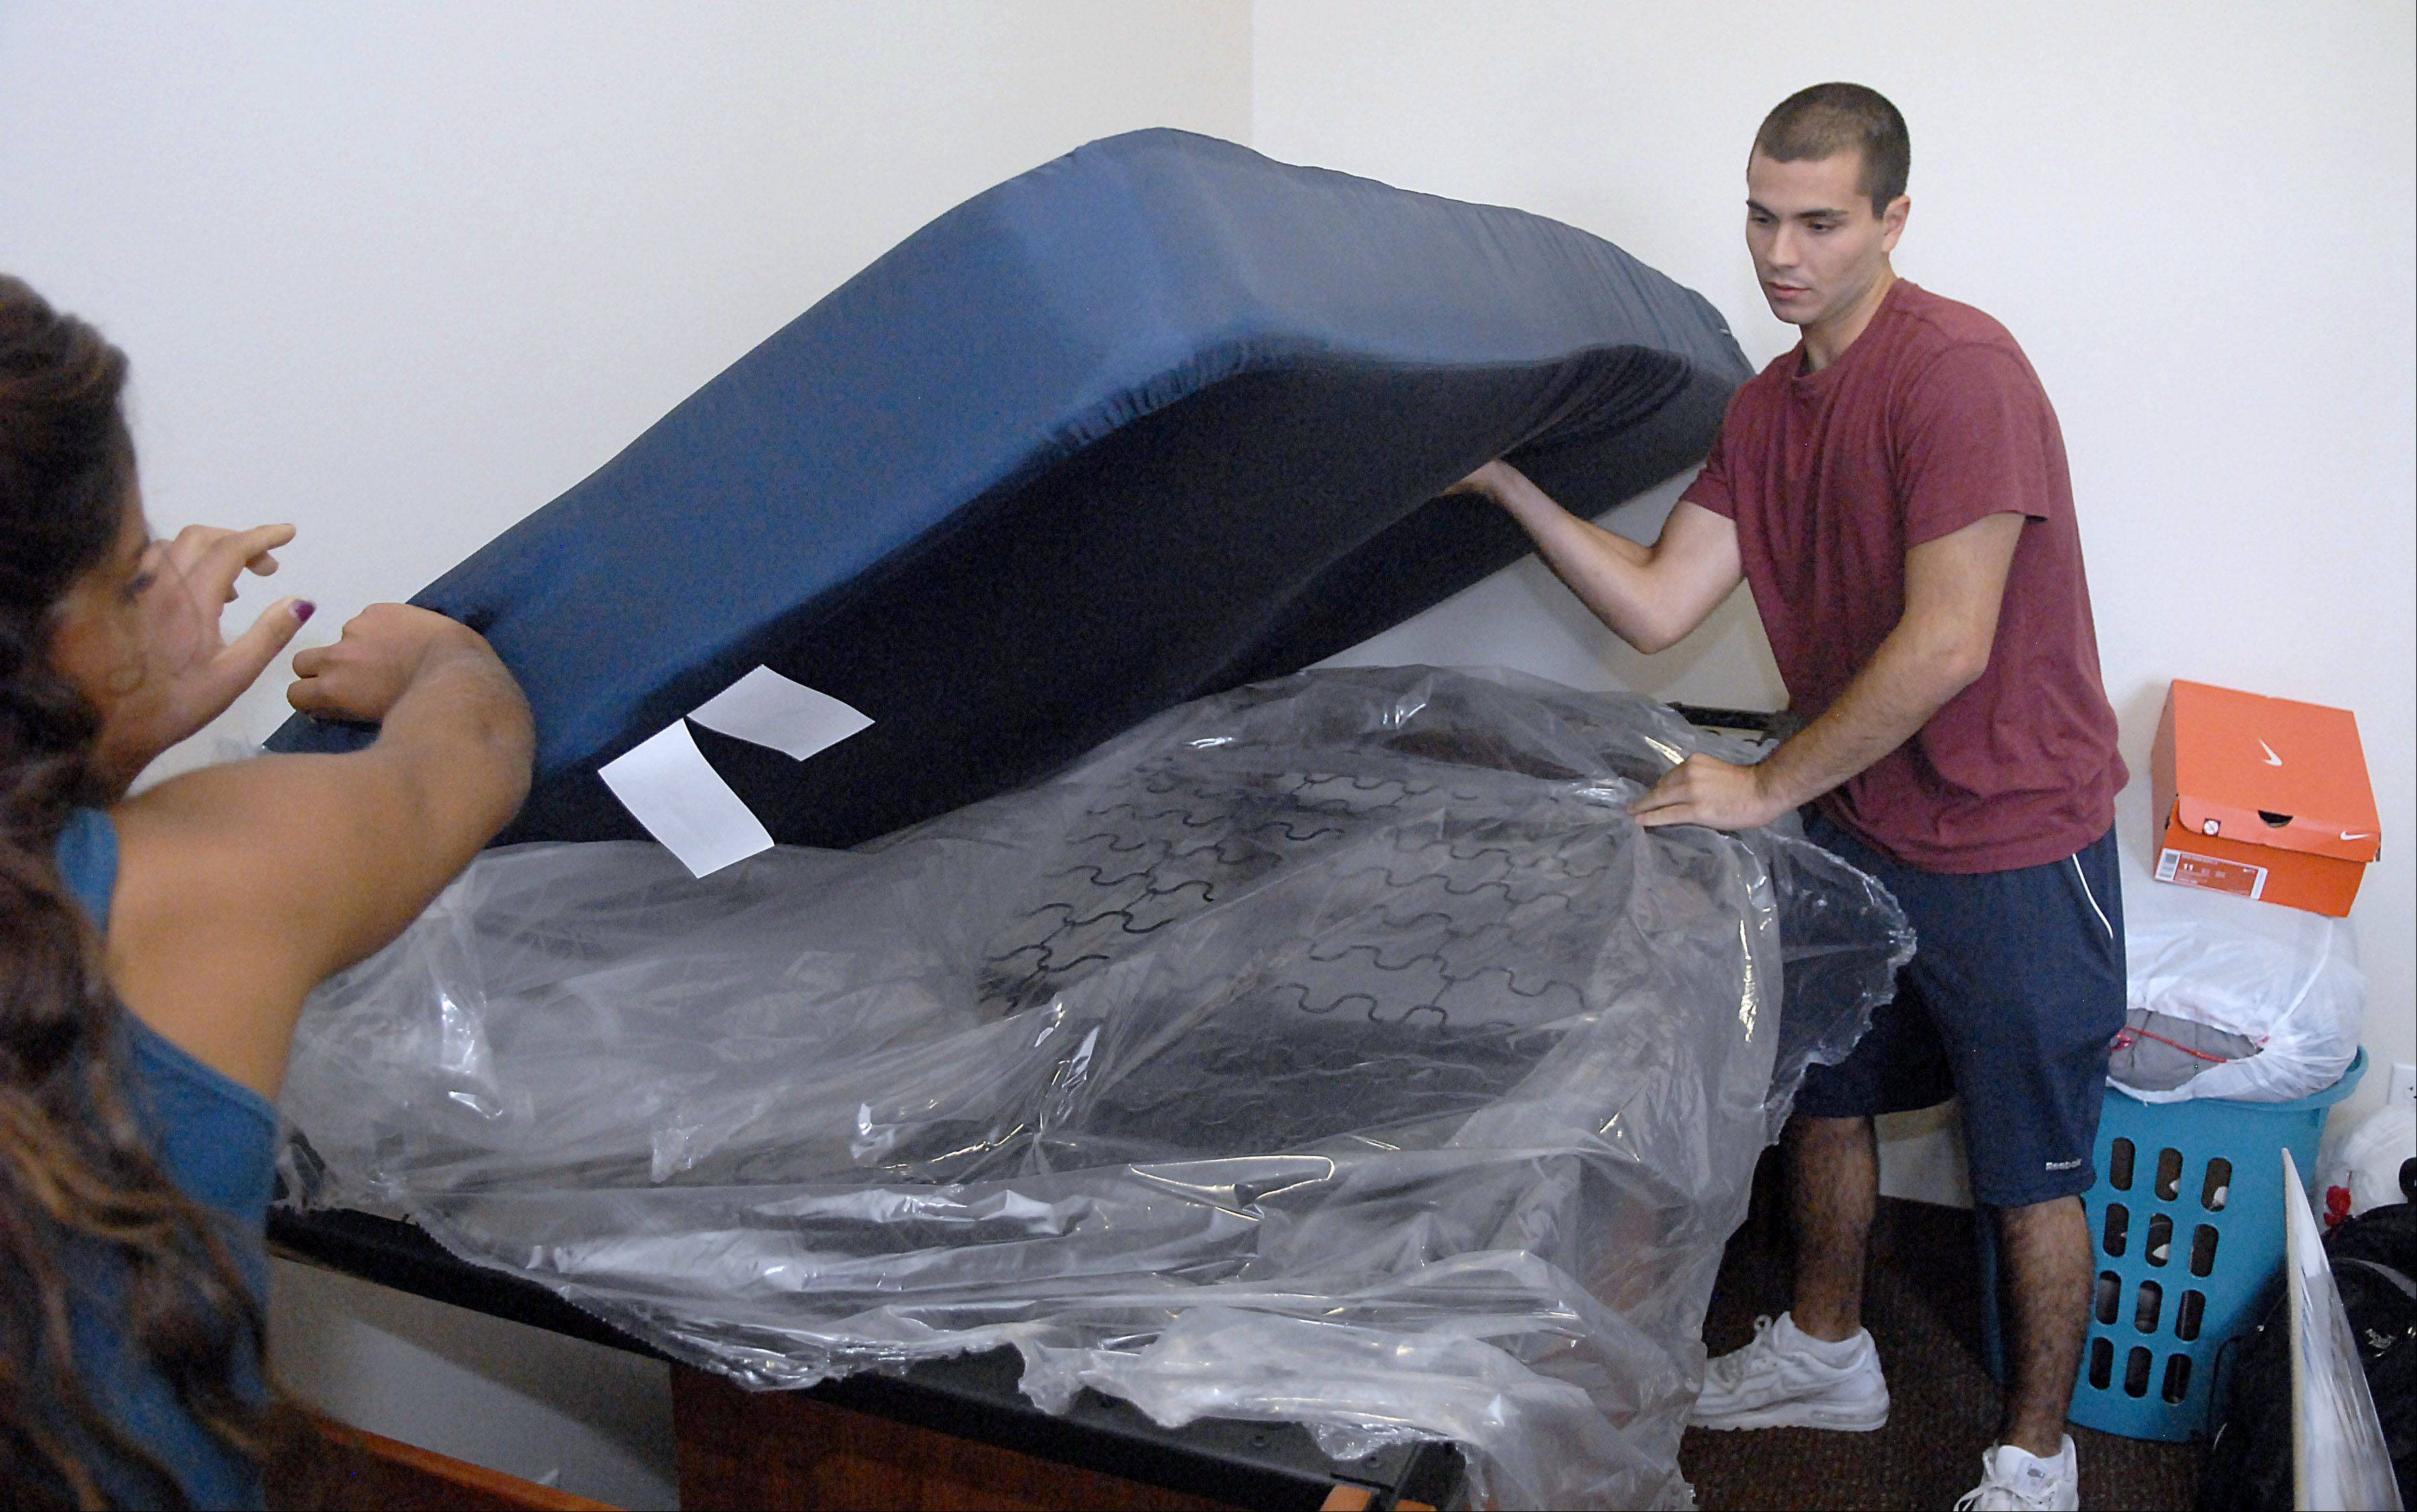 Freshman Santino Chiappetta of Hinsdale get helps from sister, Francesca, as he takes off the plastic covering of his new bed in his room at New Residence Hall West at Northern Illinois University in DeKalb on Thursday.